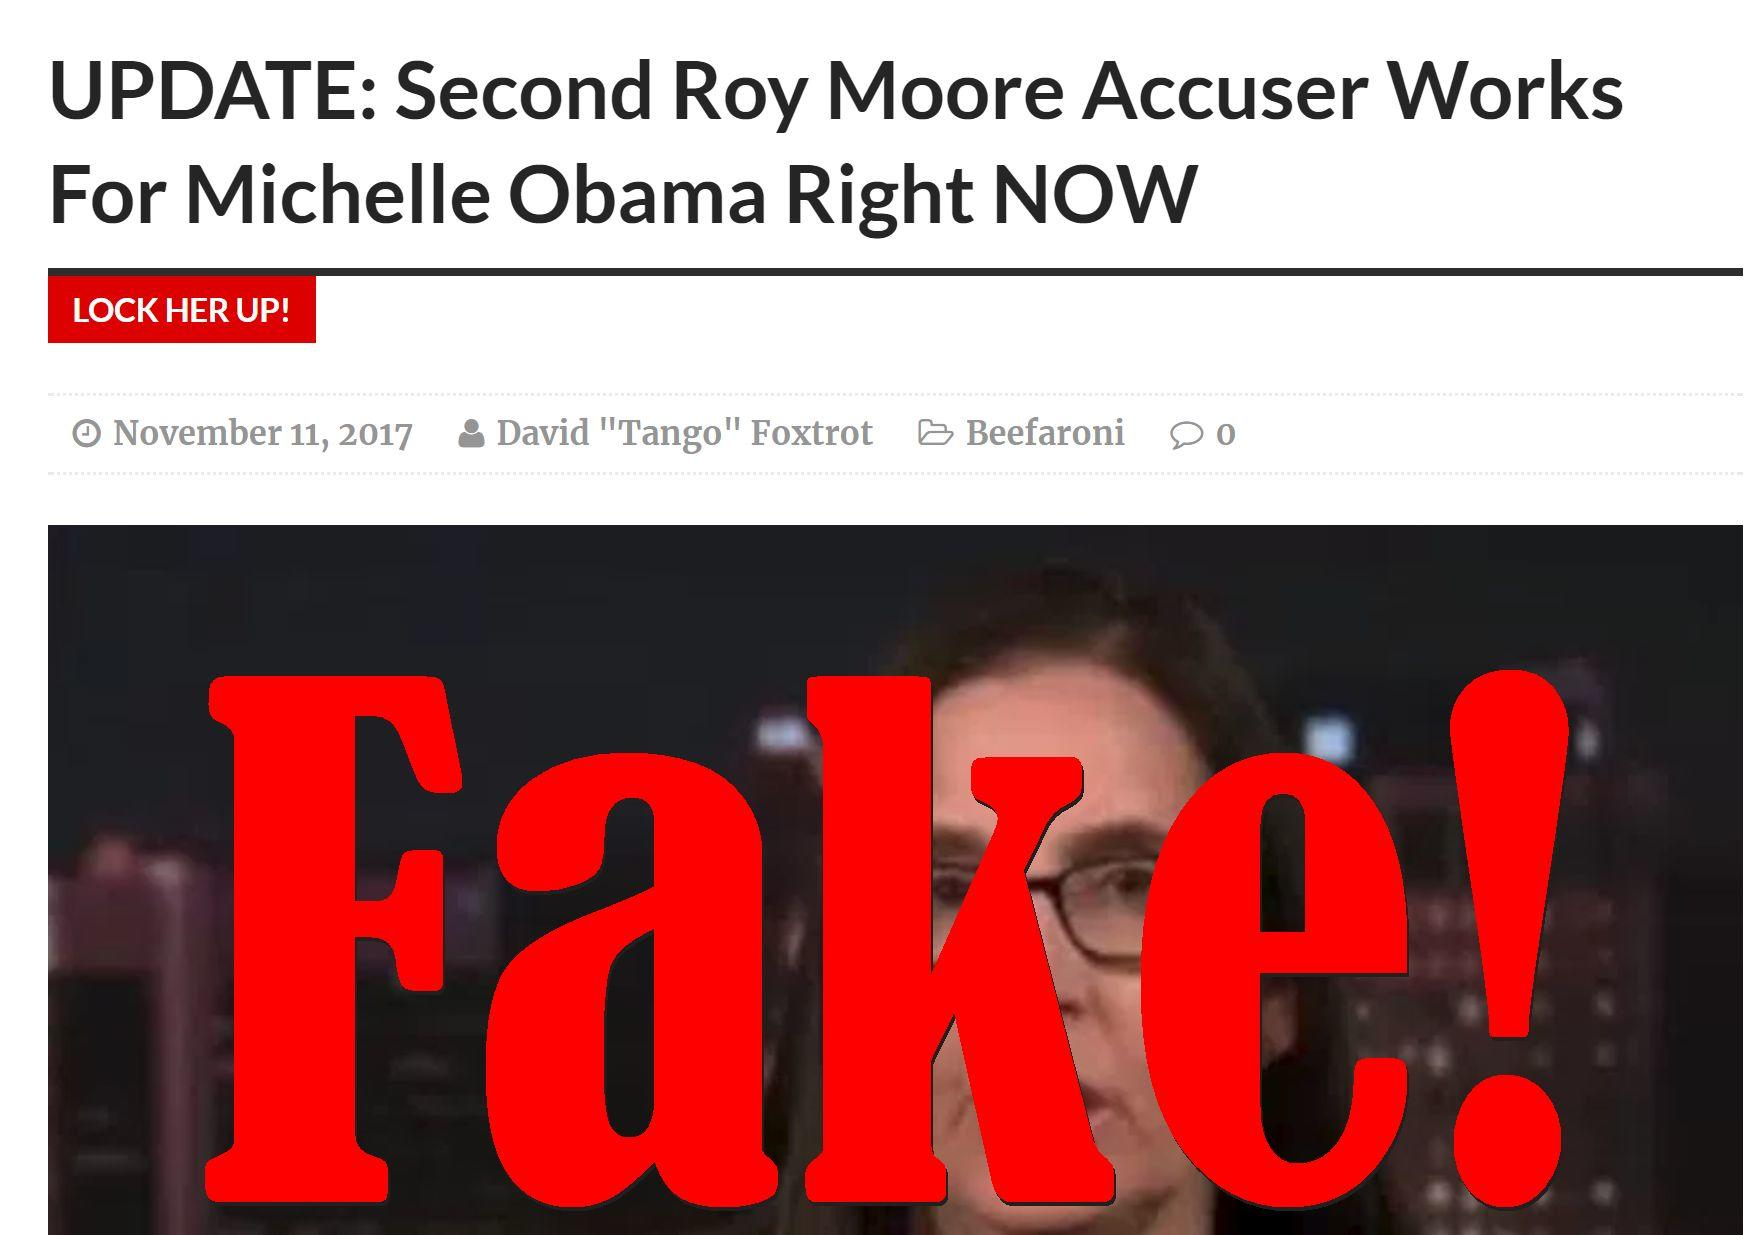 Fake News: Second Roy Moore Accuser NOT Working For Michelle Obama